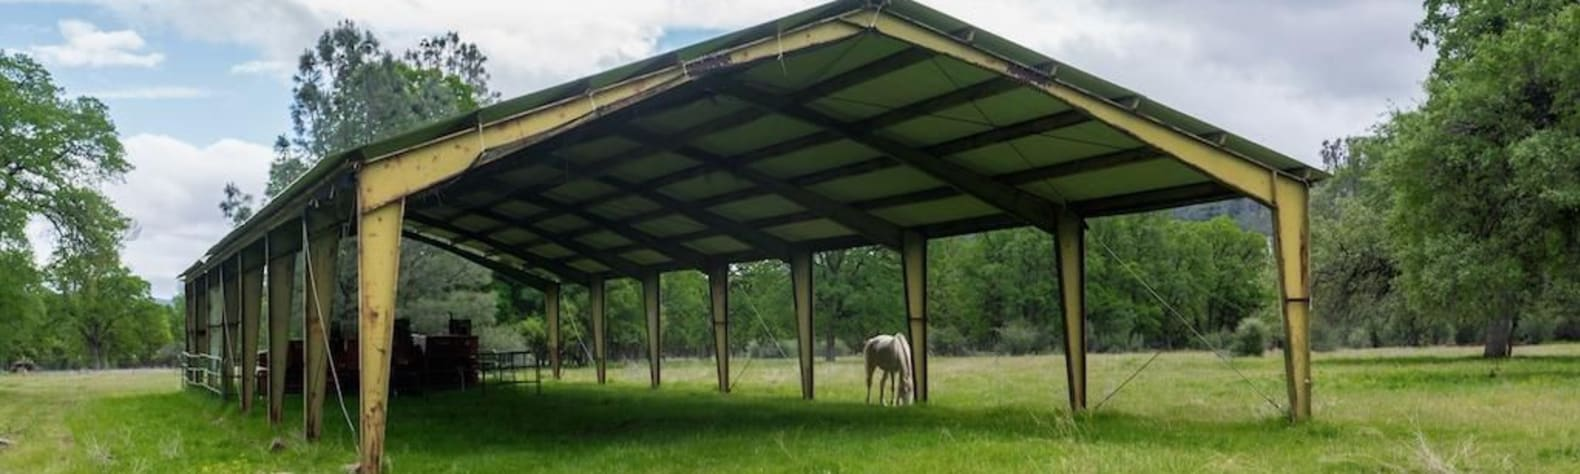 Morning Star Ranch Roofed Group